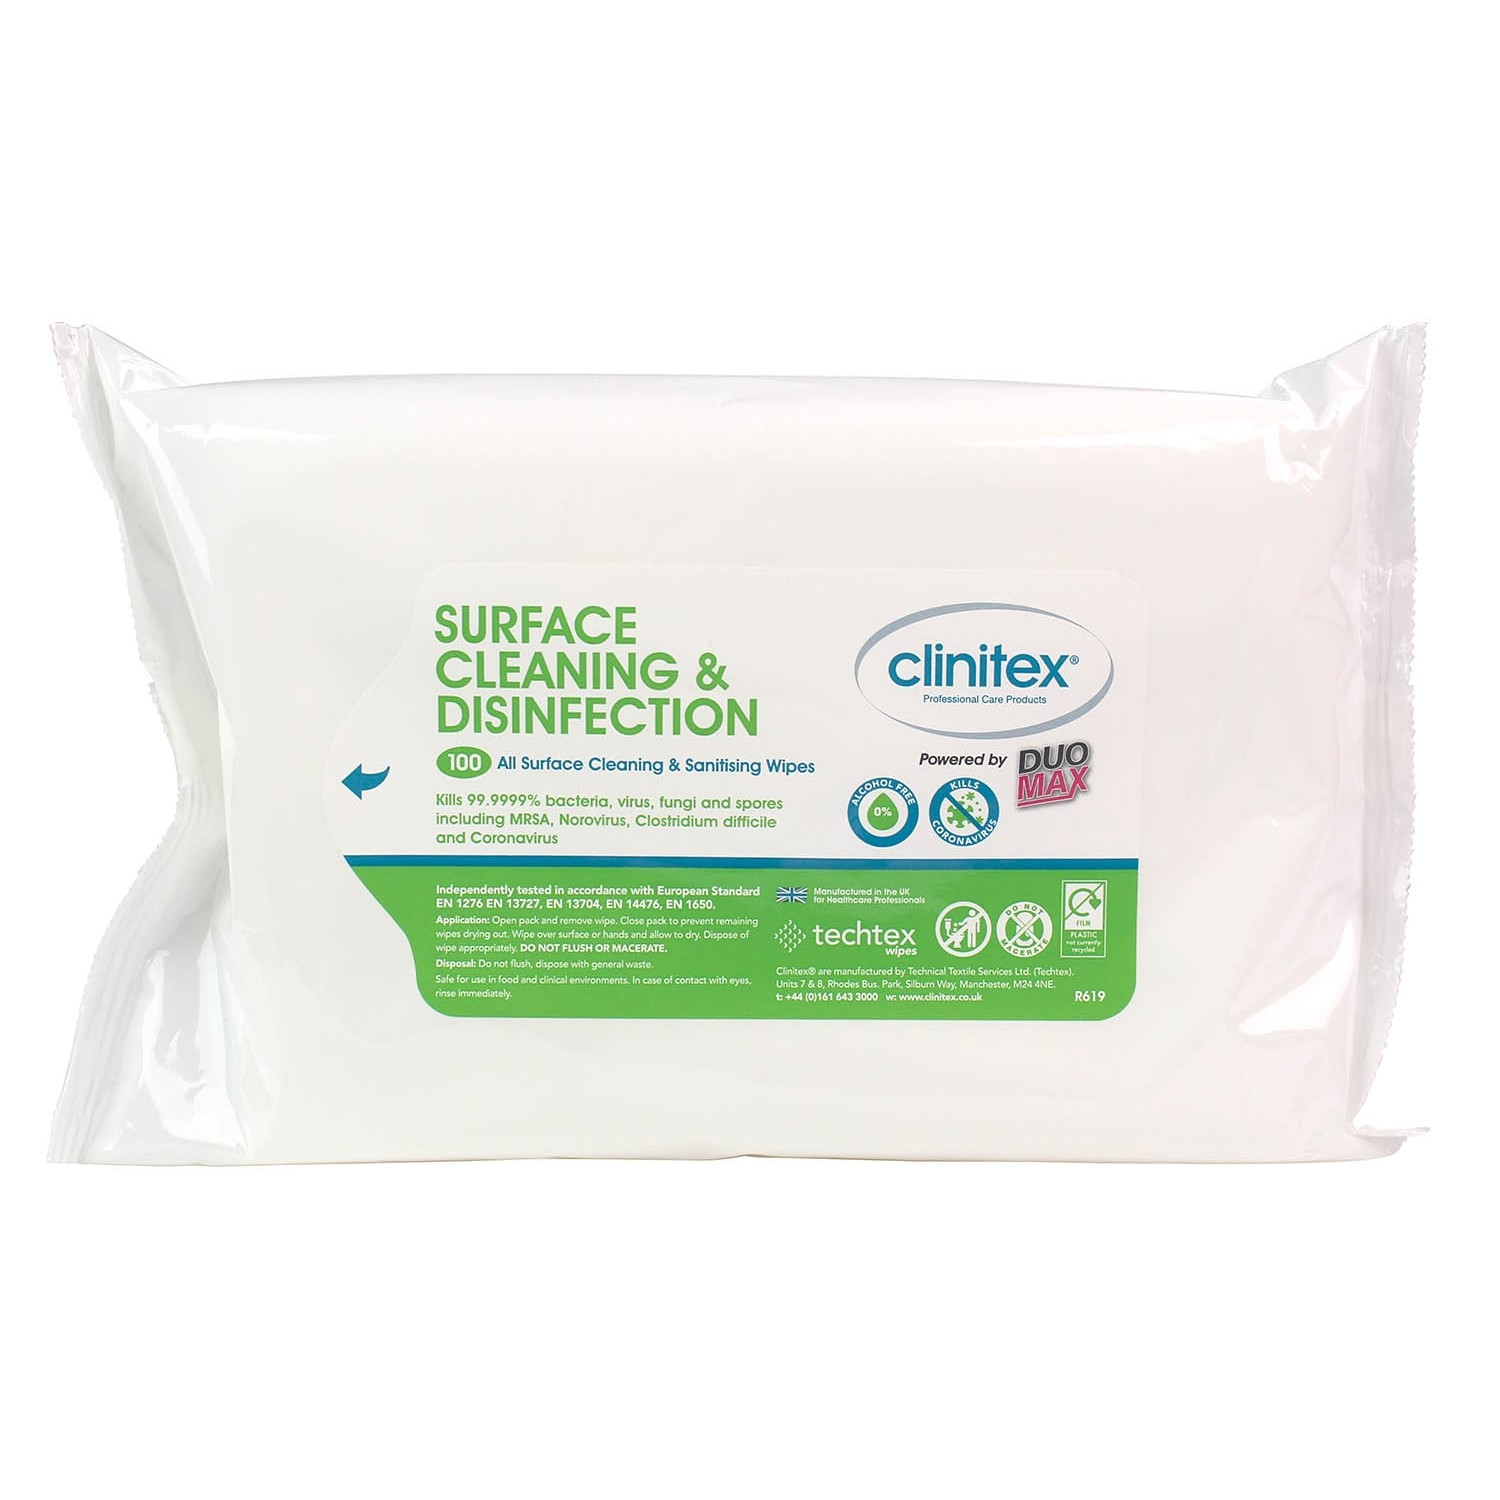 Clinitex Multi Surface Cleaner Disinfectant Wipes 27x20cmx100